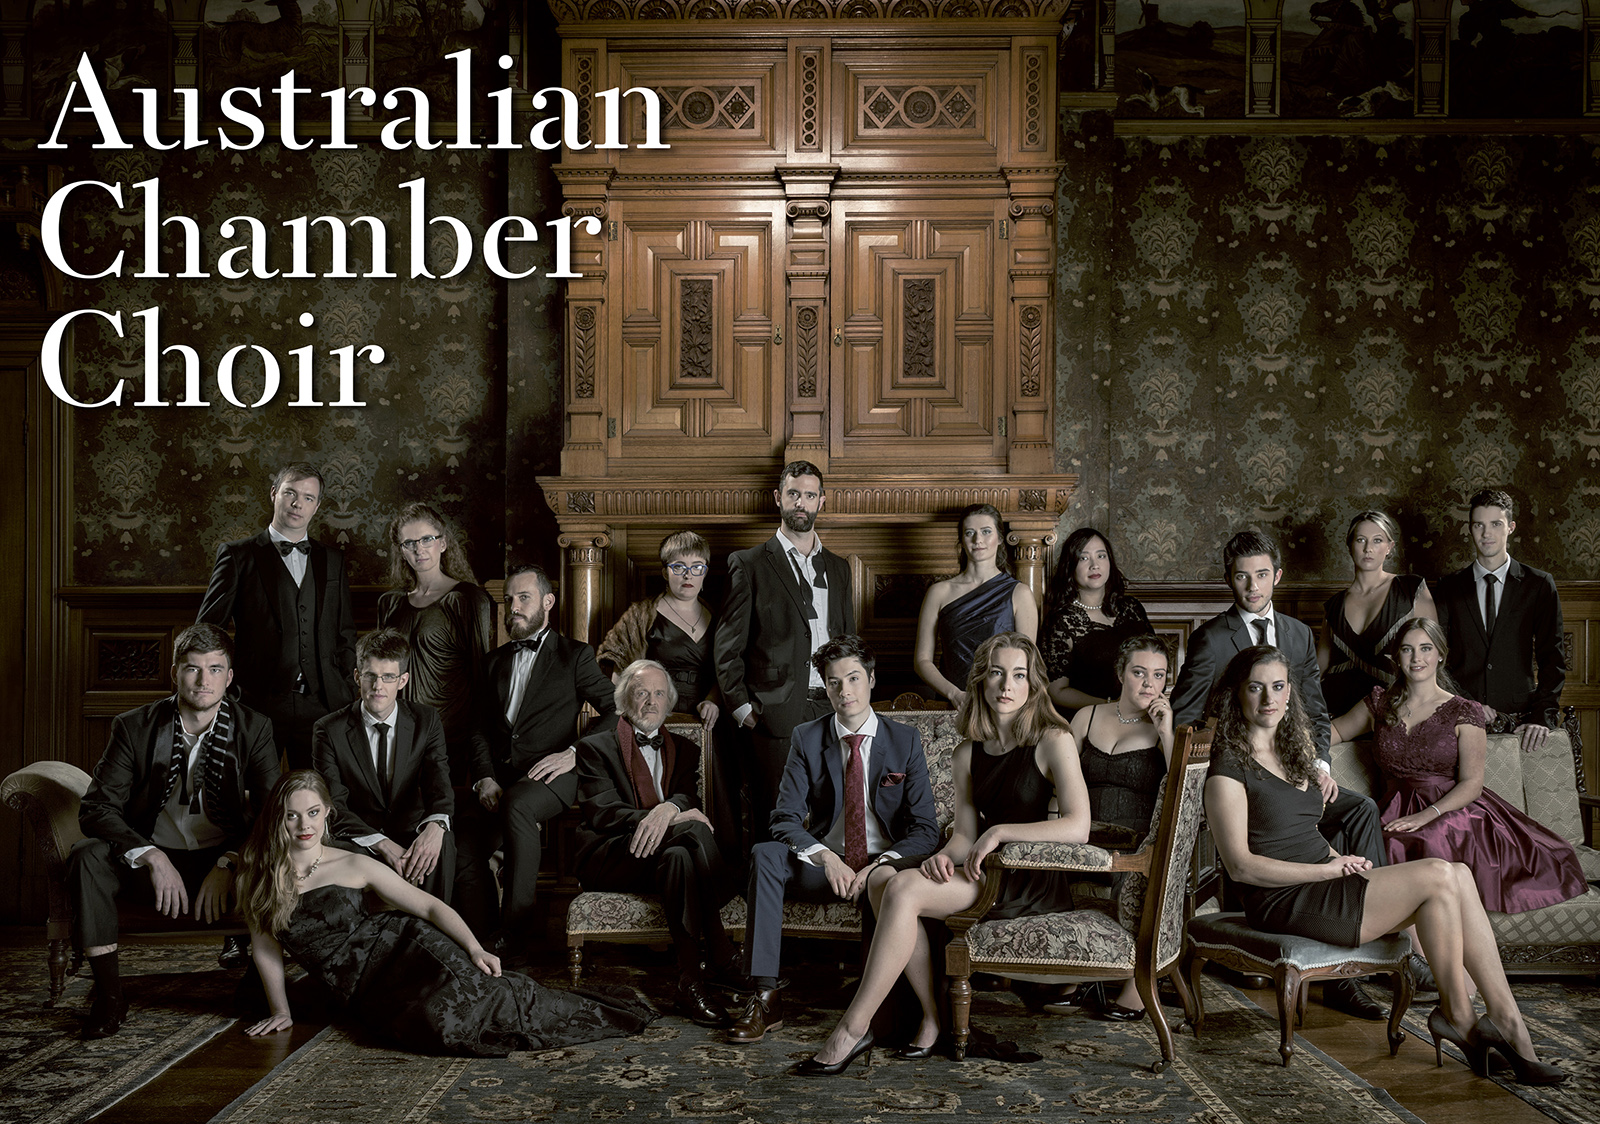 Australian Chamber Choir / 2017 International Season promotional brochure